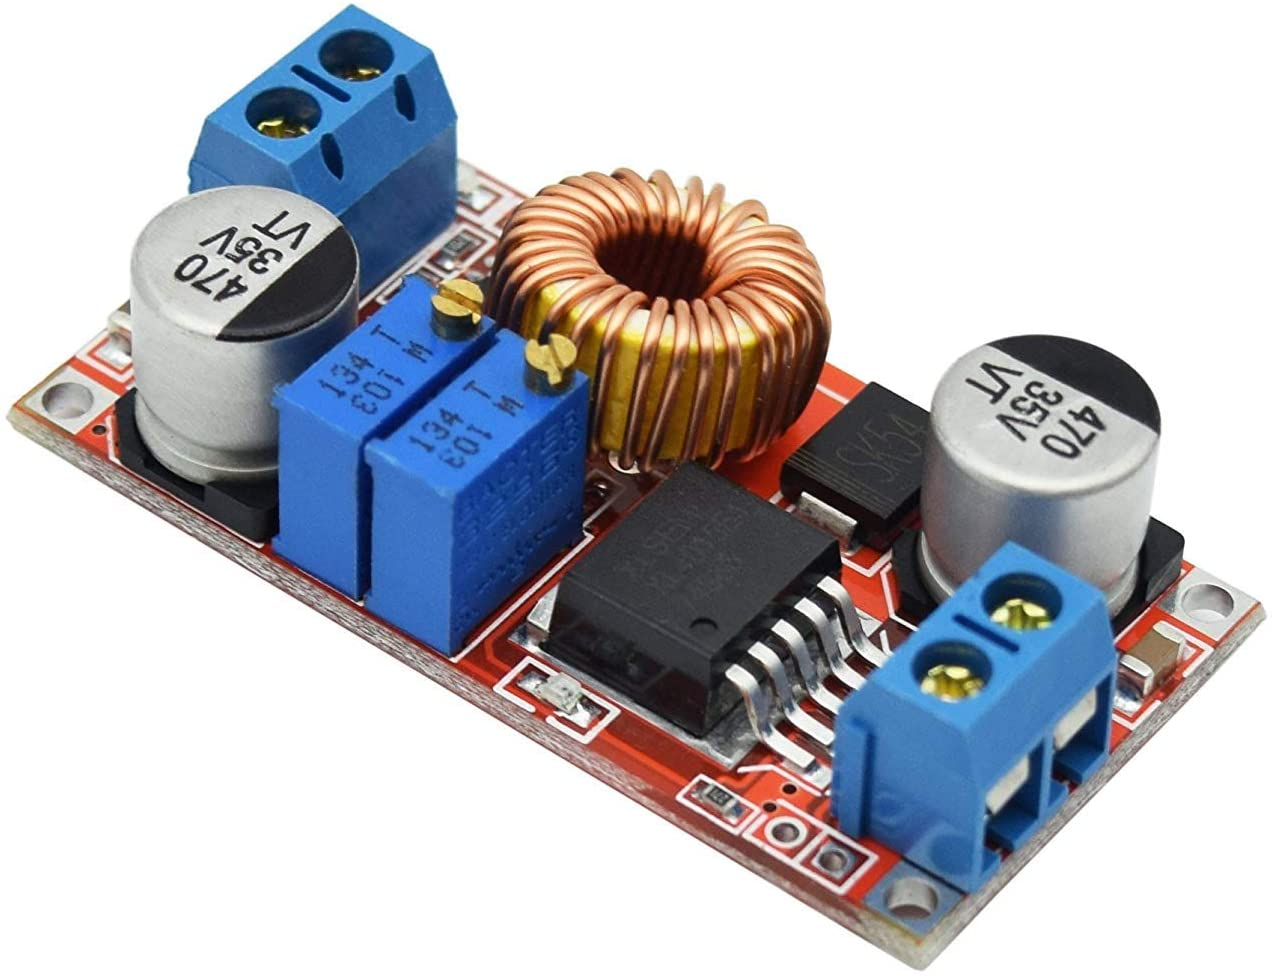 ARCELI 5A Constant Current LED Driver Module Battery Charging Voltage DC-DC 5-32V to 0.8-30V Power Supply Module for Arduino